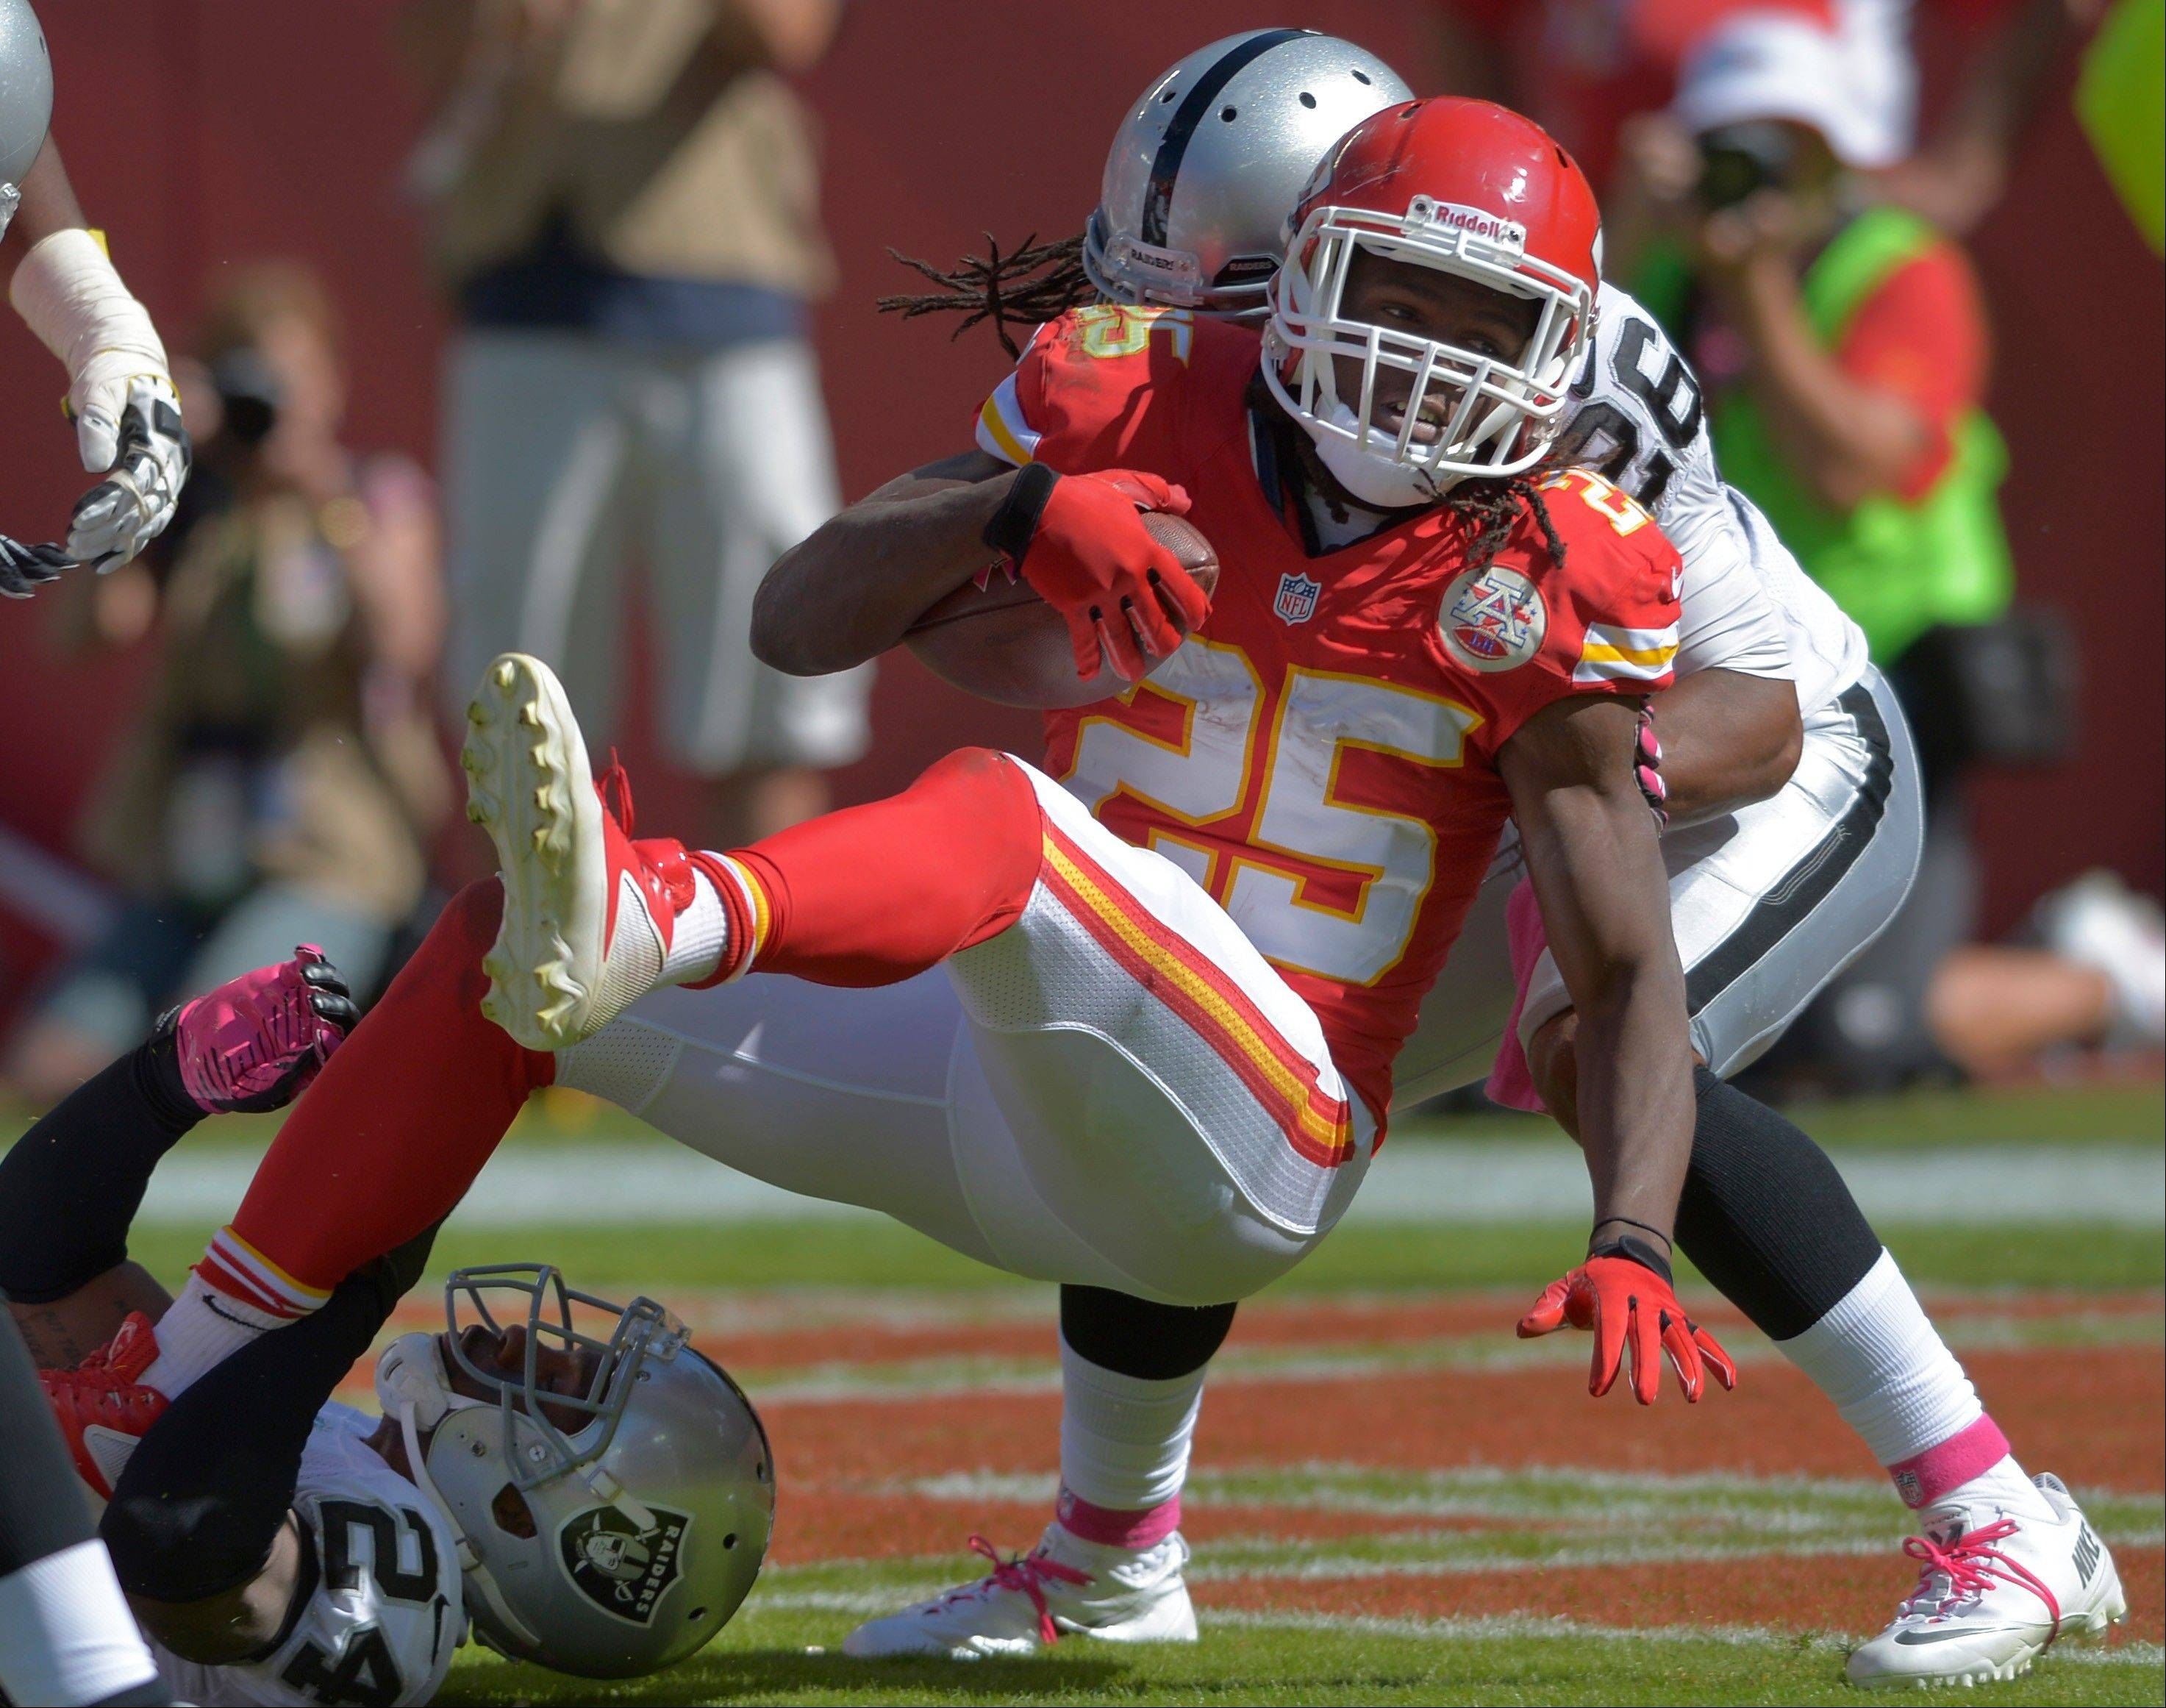 Chiefs running back Jamaal Charles crosses the goal line for a touchdown as Oakland free safety Usama Young defends during the first half of Sunday's game in Kansas City, Mo.